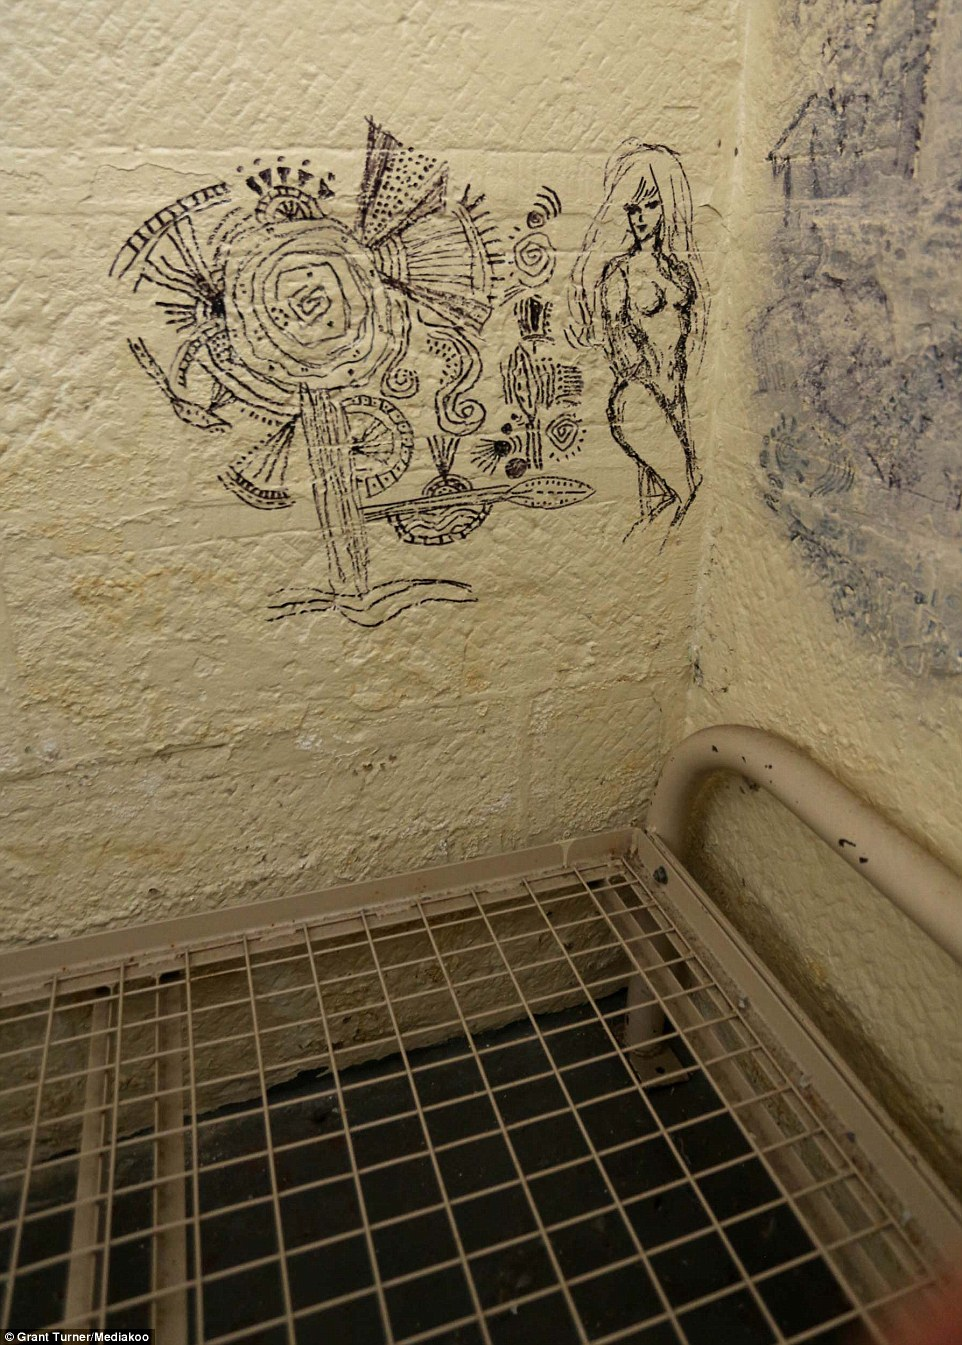 962x1345 Jail Cell Drawing